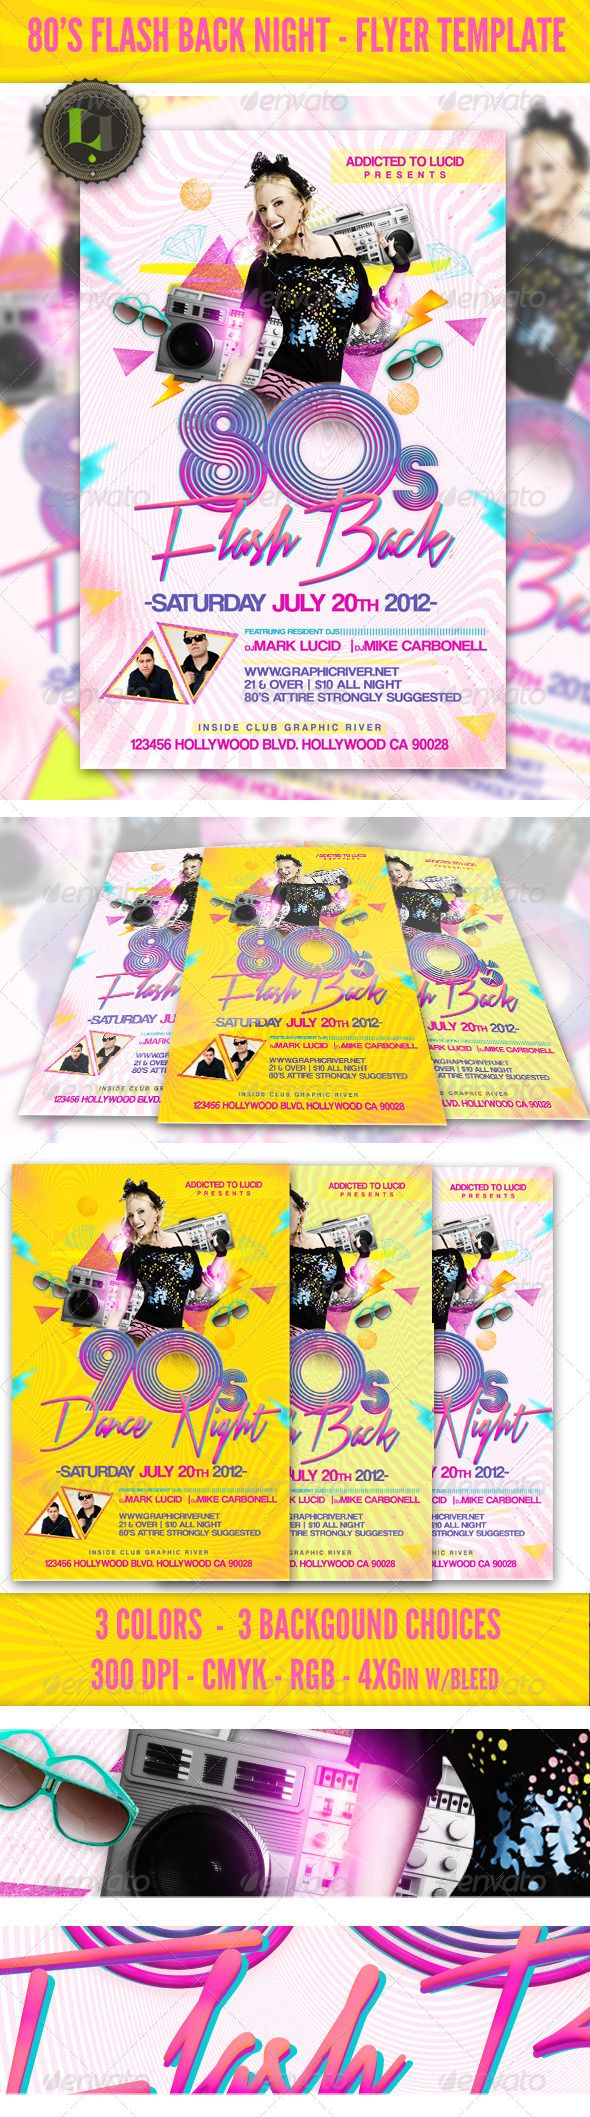 80s Flash Back Night Flyer Template – Template for a Flyer